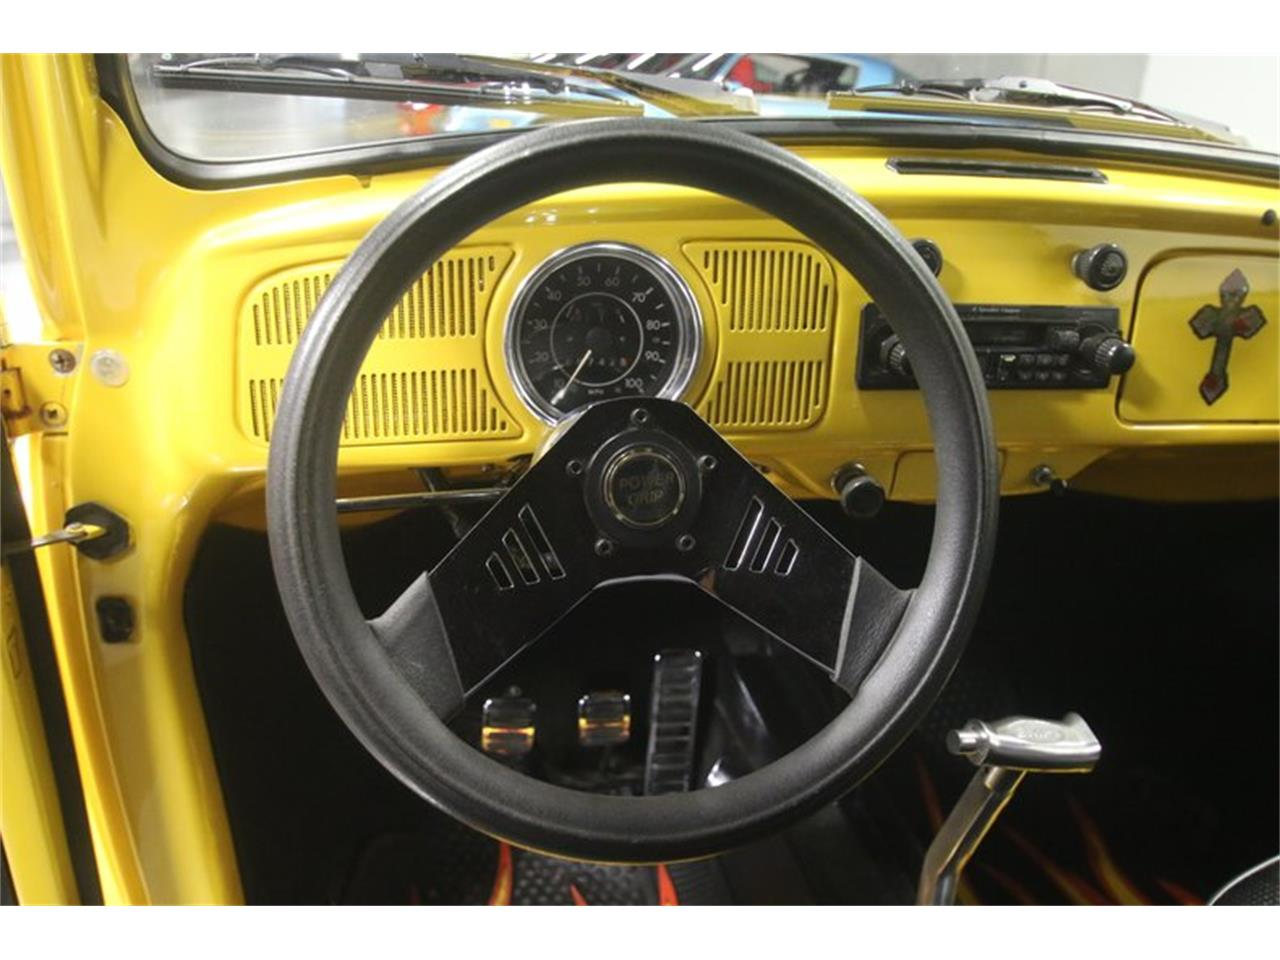 Large Picture of Classic 1969 Volkswagen Baja Bug located in Lithia Springs Georgia - $14,995.00 - N8PC